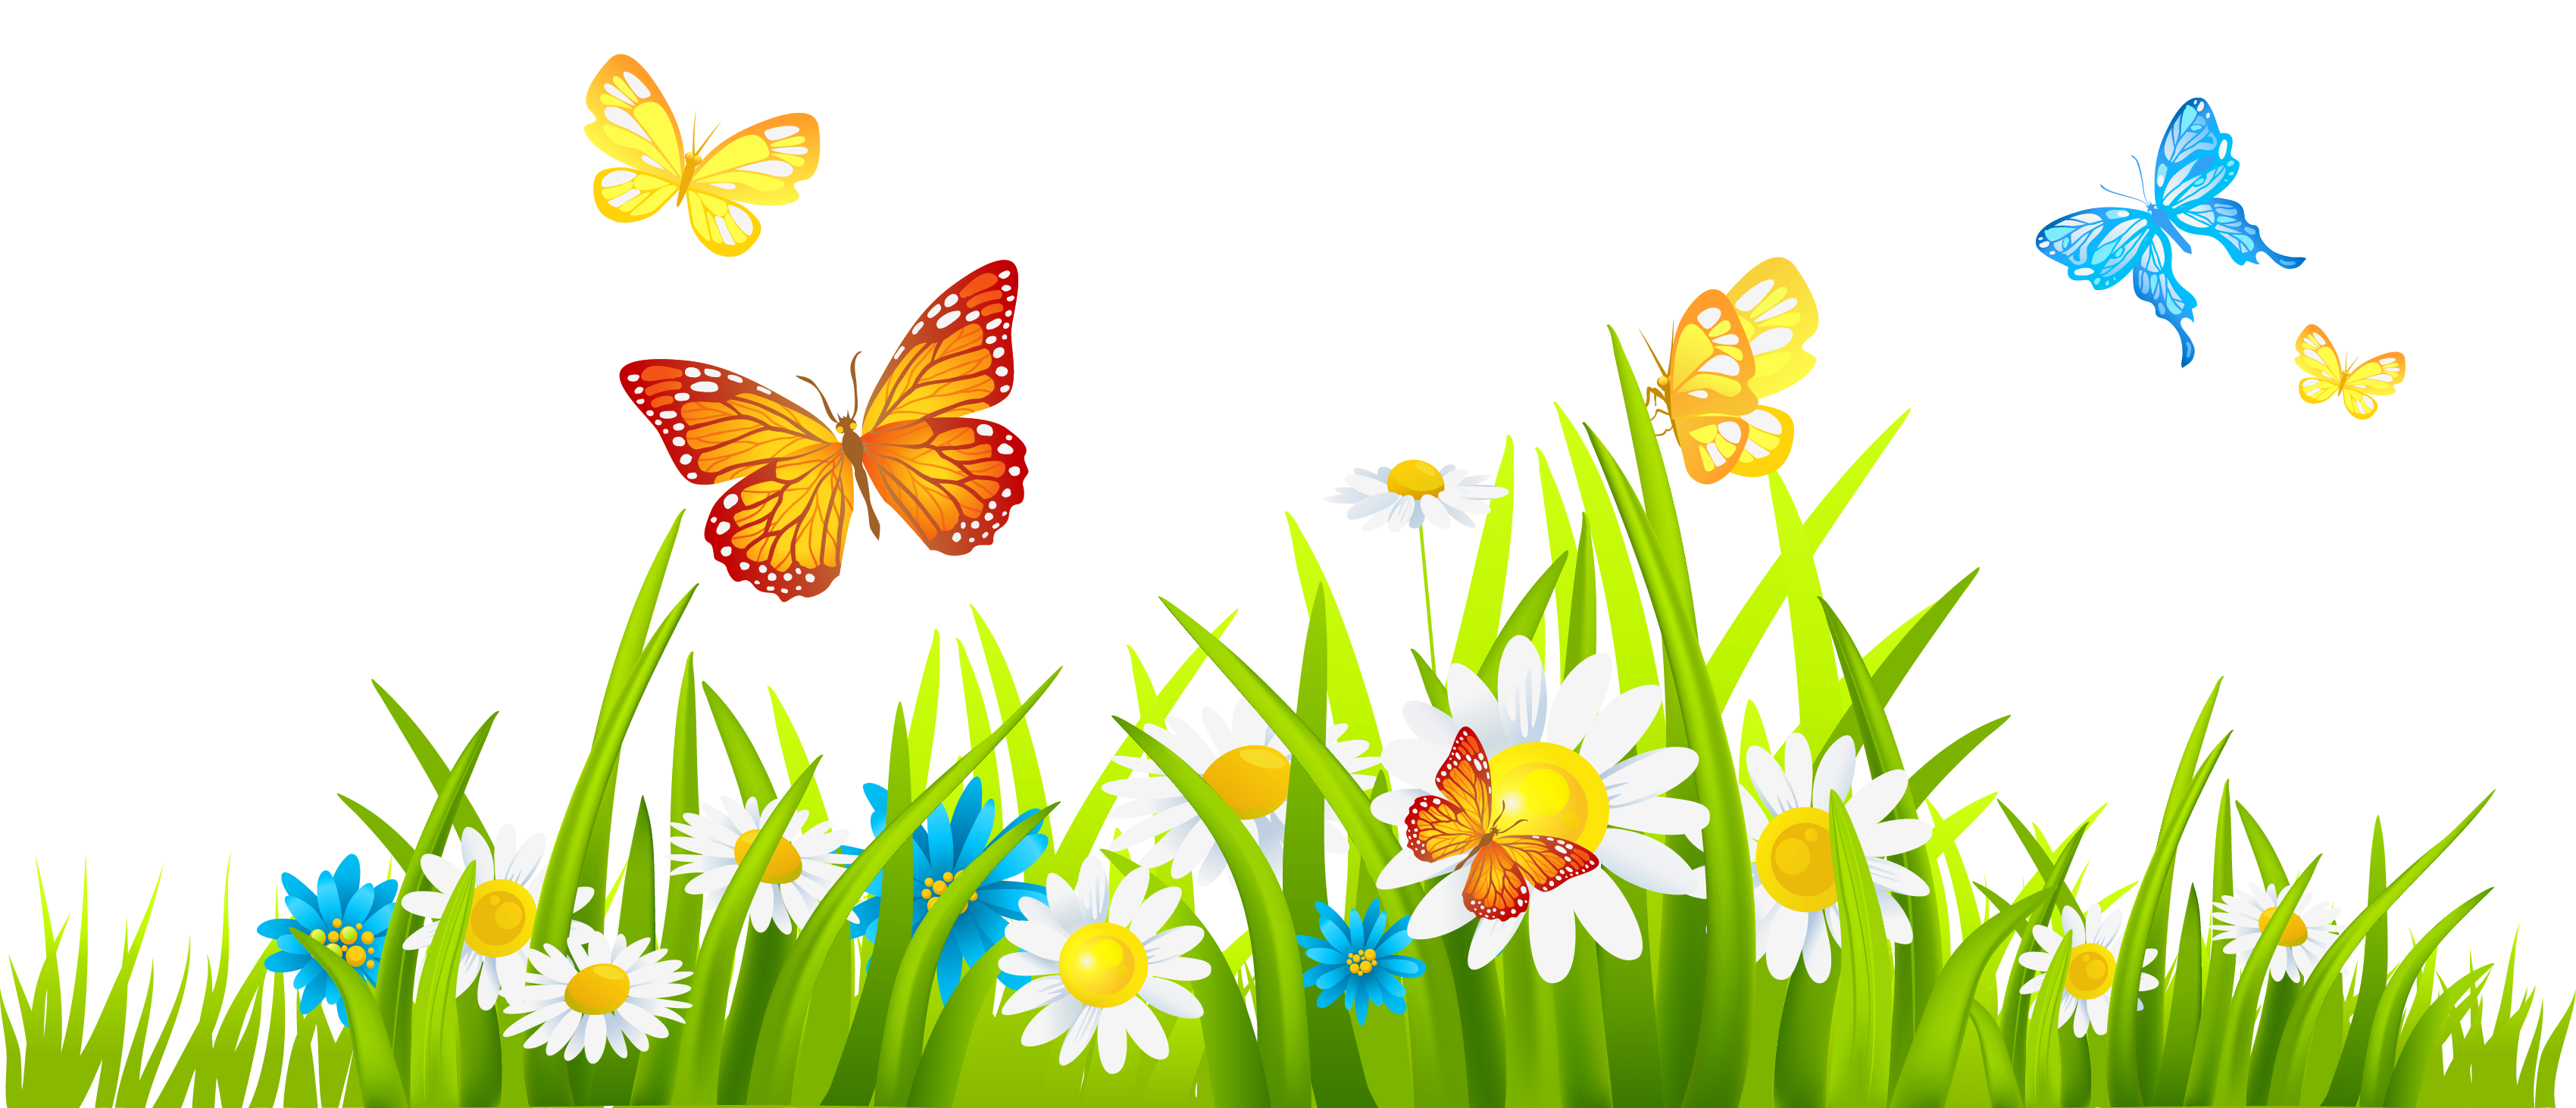 Flower meadow clipart. April flowers showers bring